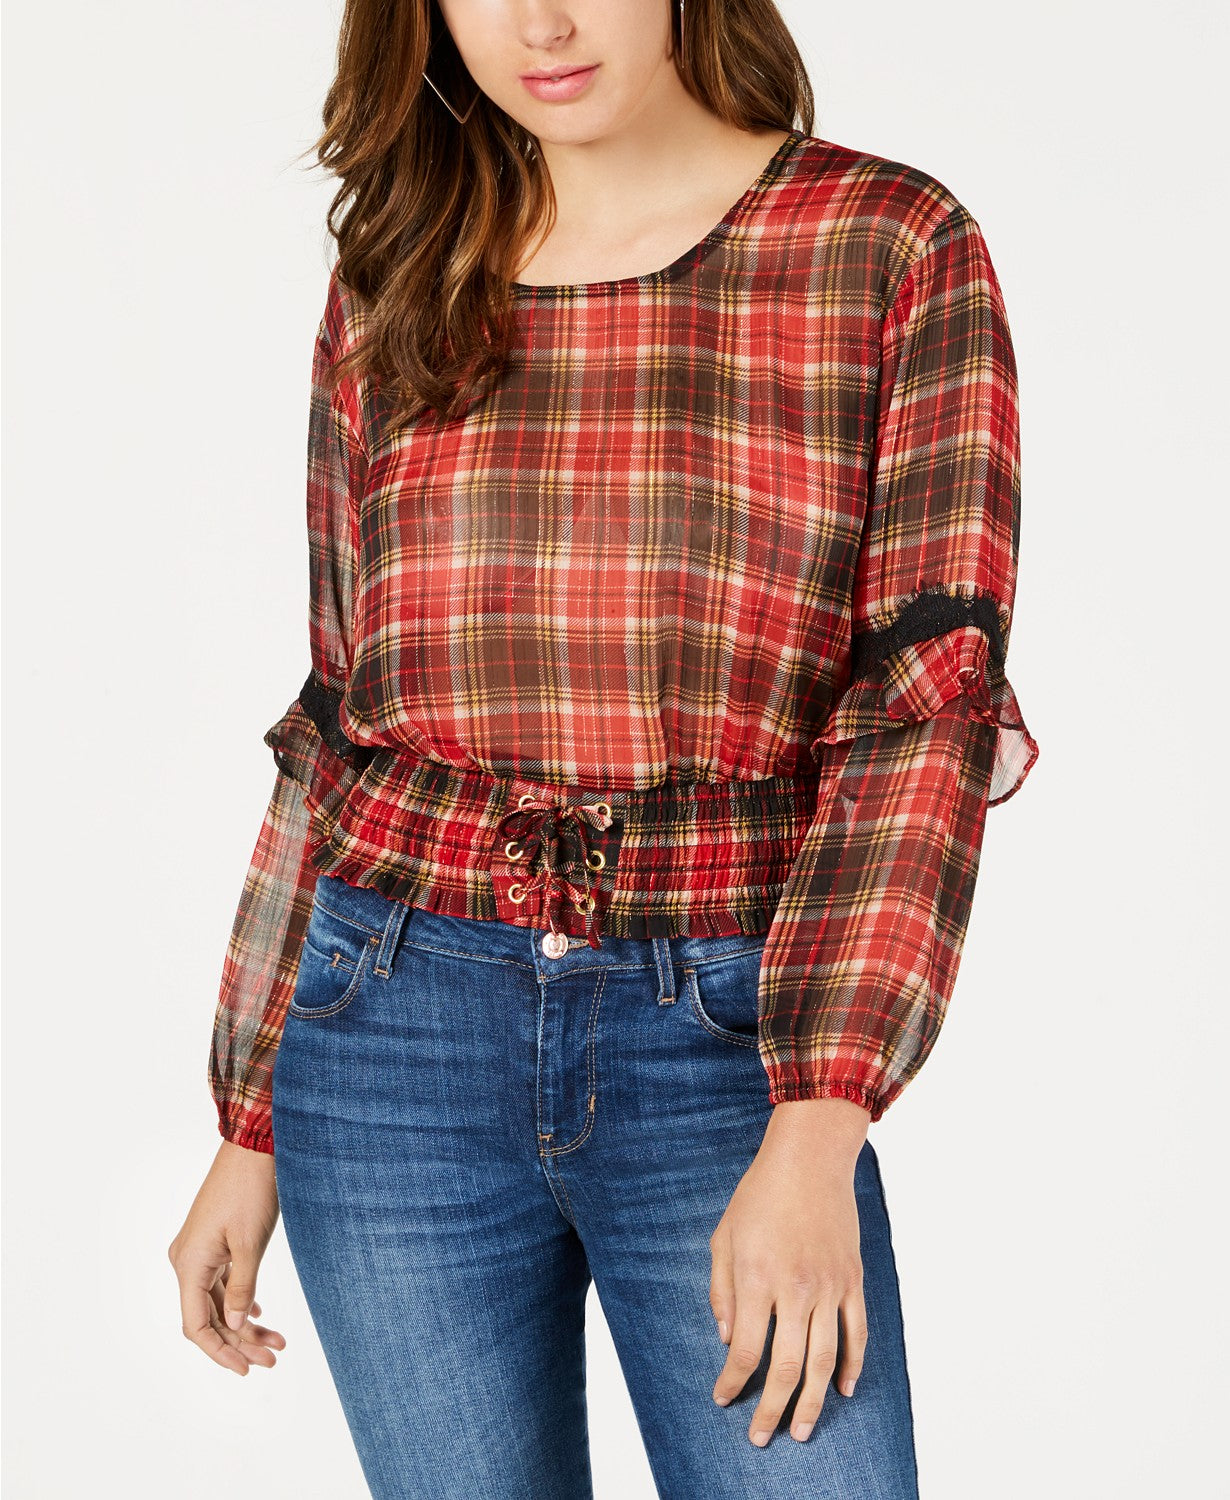 GUESS Women's Sheer Smocked Top Madison Plaid Sultry Red Multi S